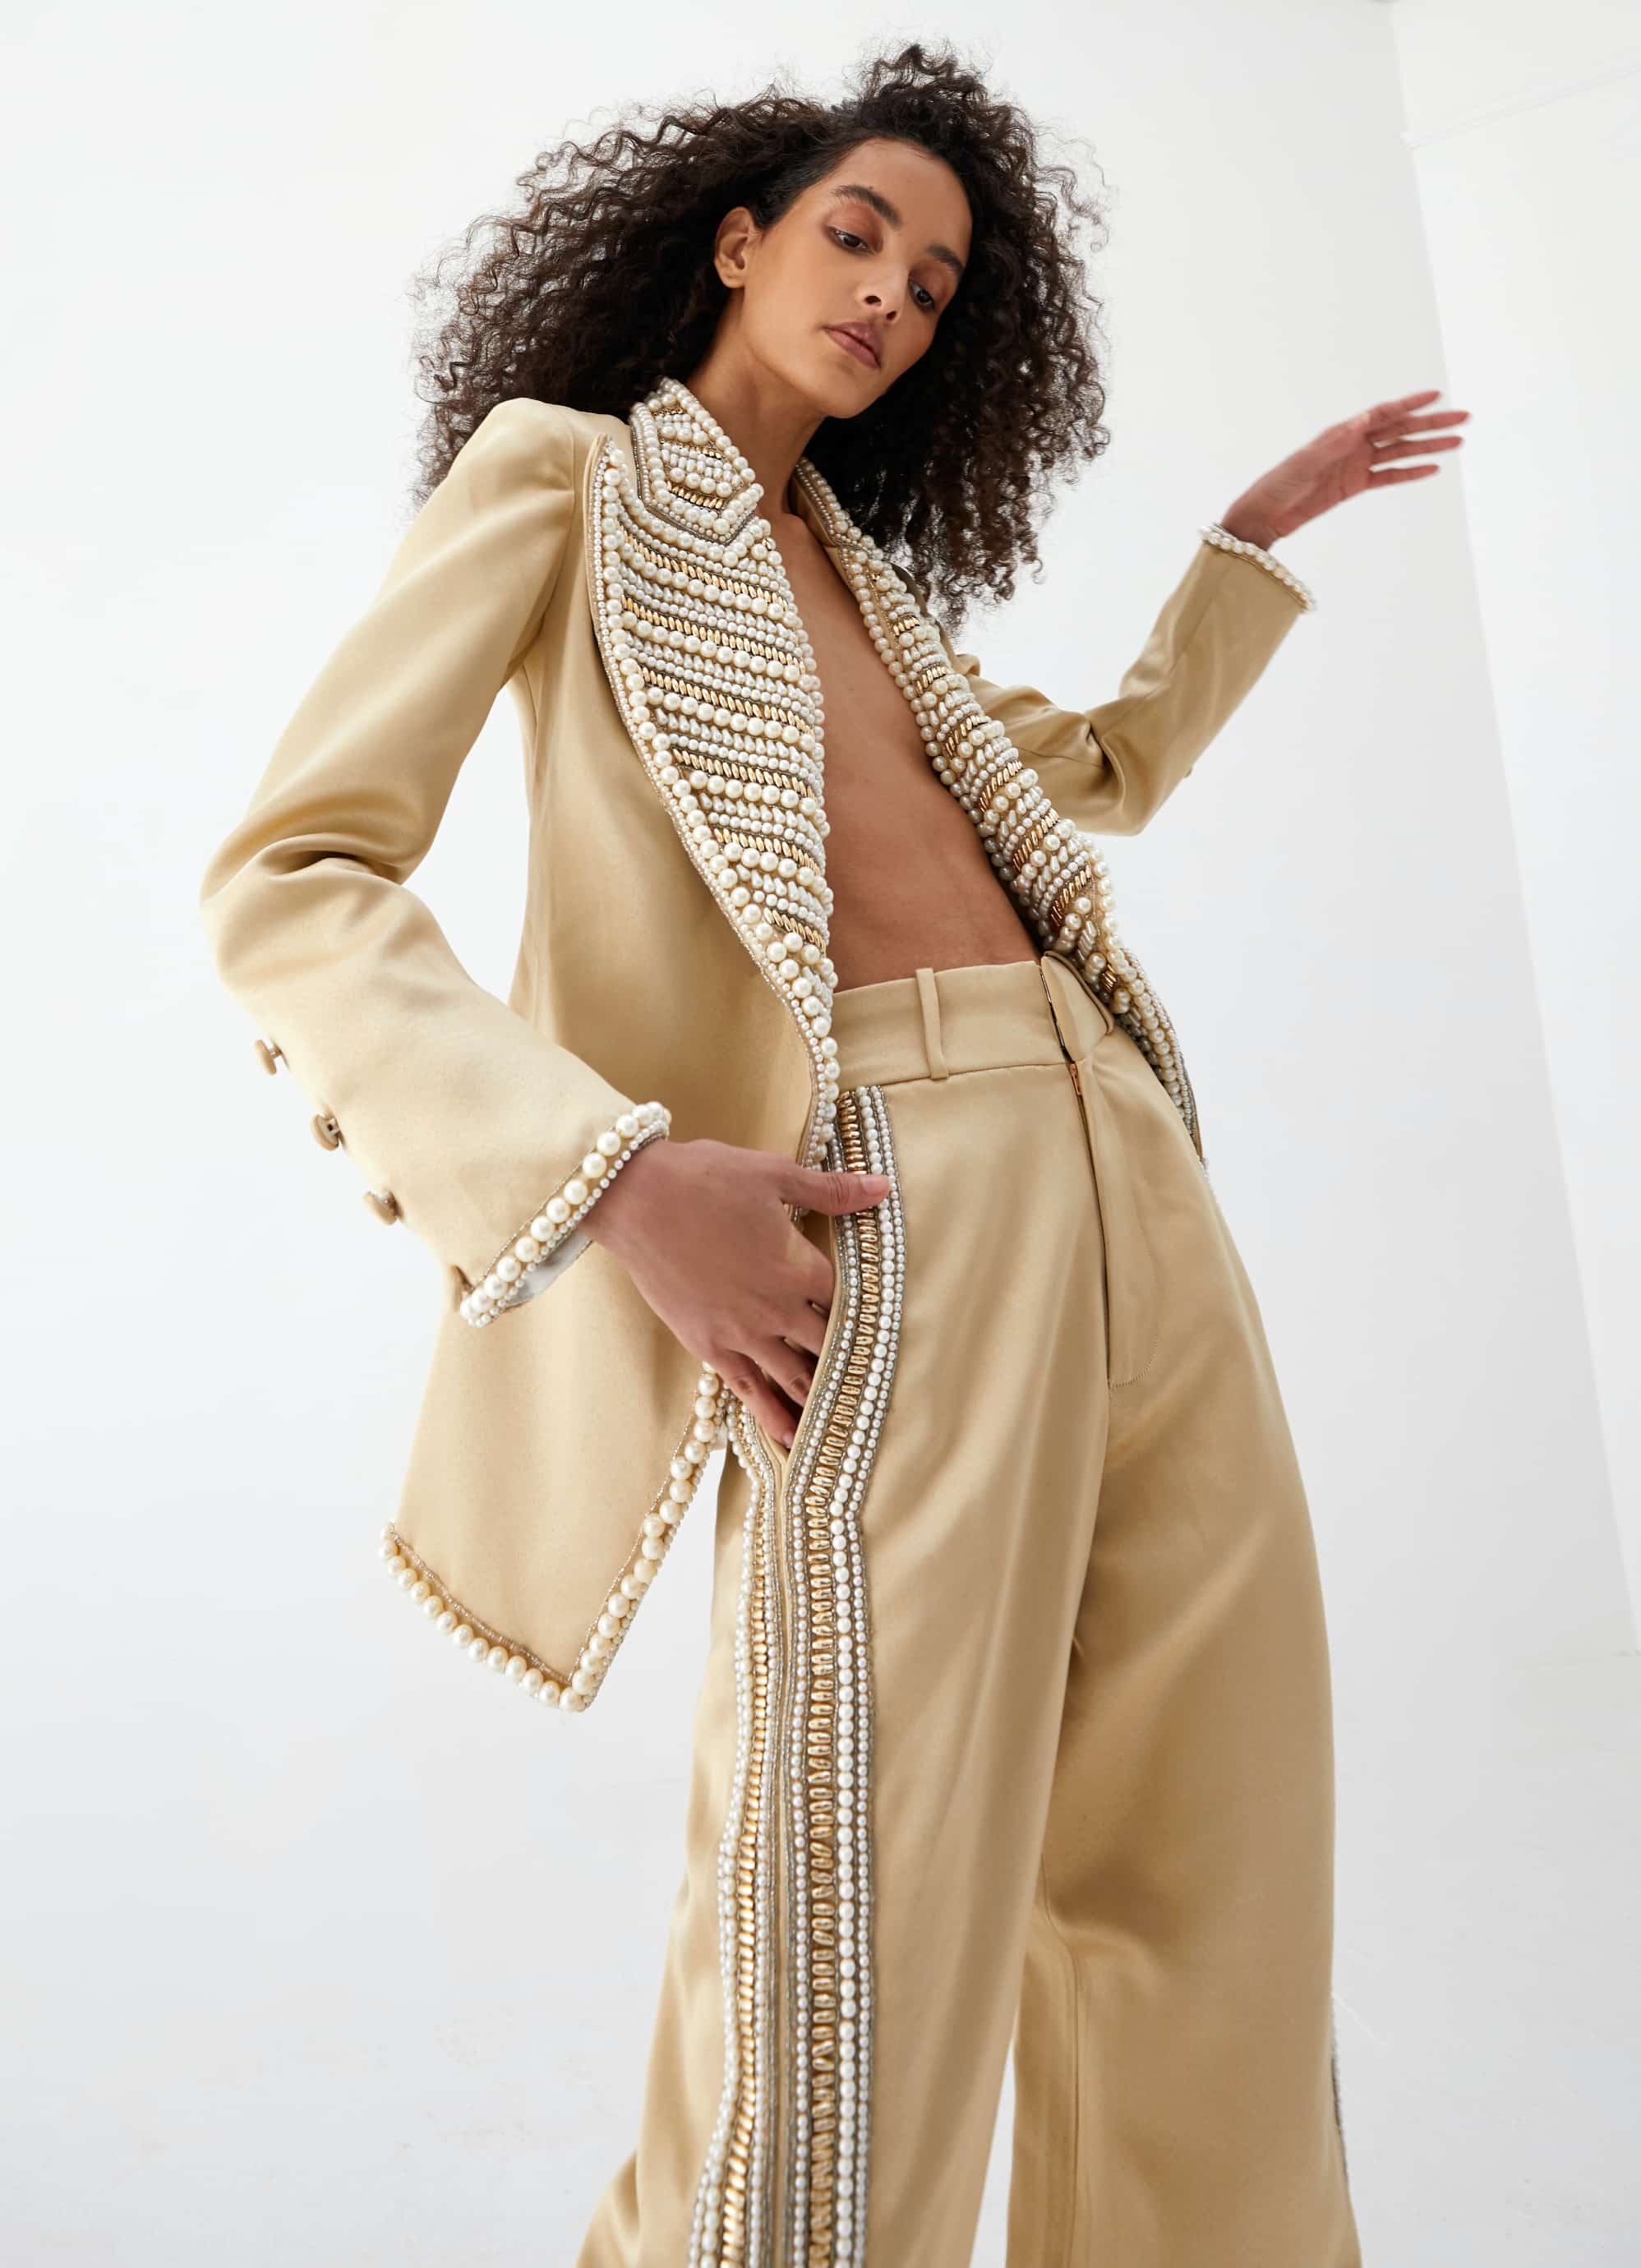 View 4 of model wearing Kismah Trousers in sand gold.